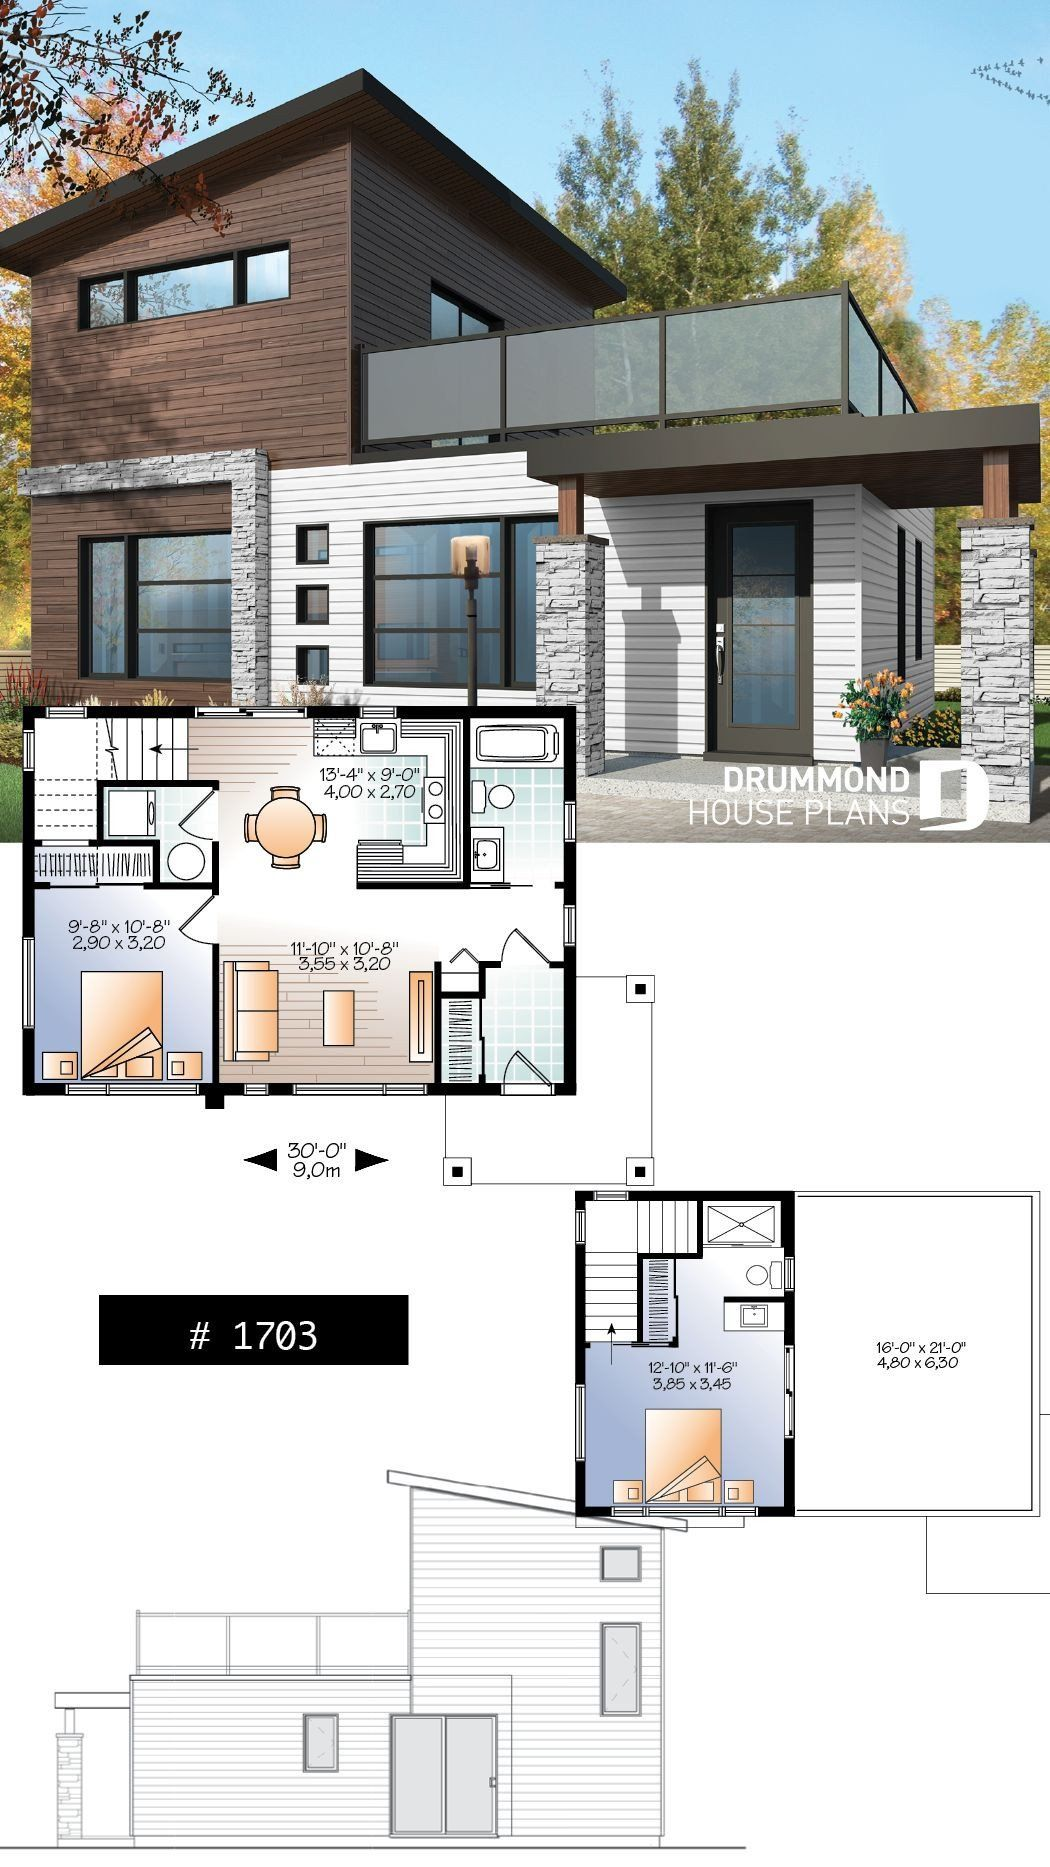 Affordable Modern House Plans To Build House Plan Joshua No 1703 In 2020 2 Storey House Design Modern House Floor Plans Sims House Plans